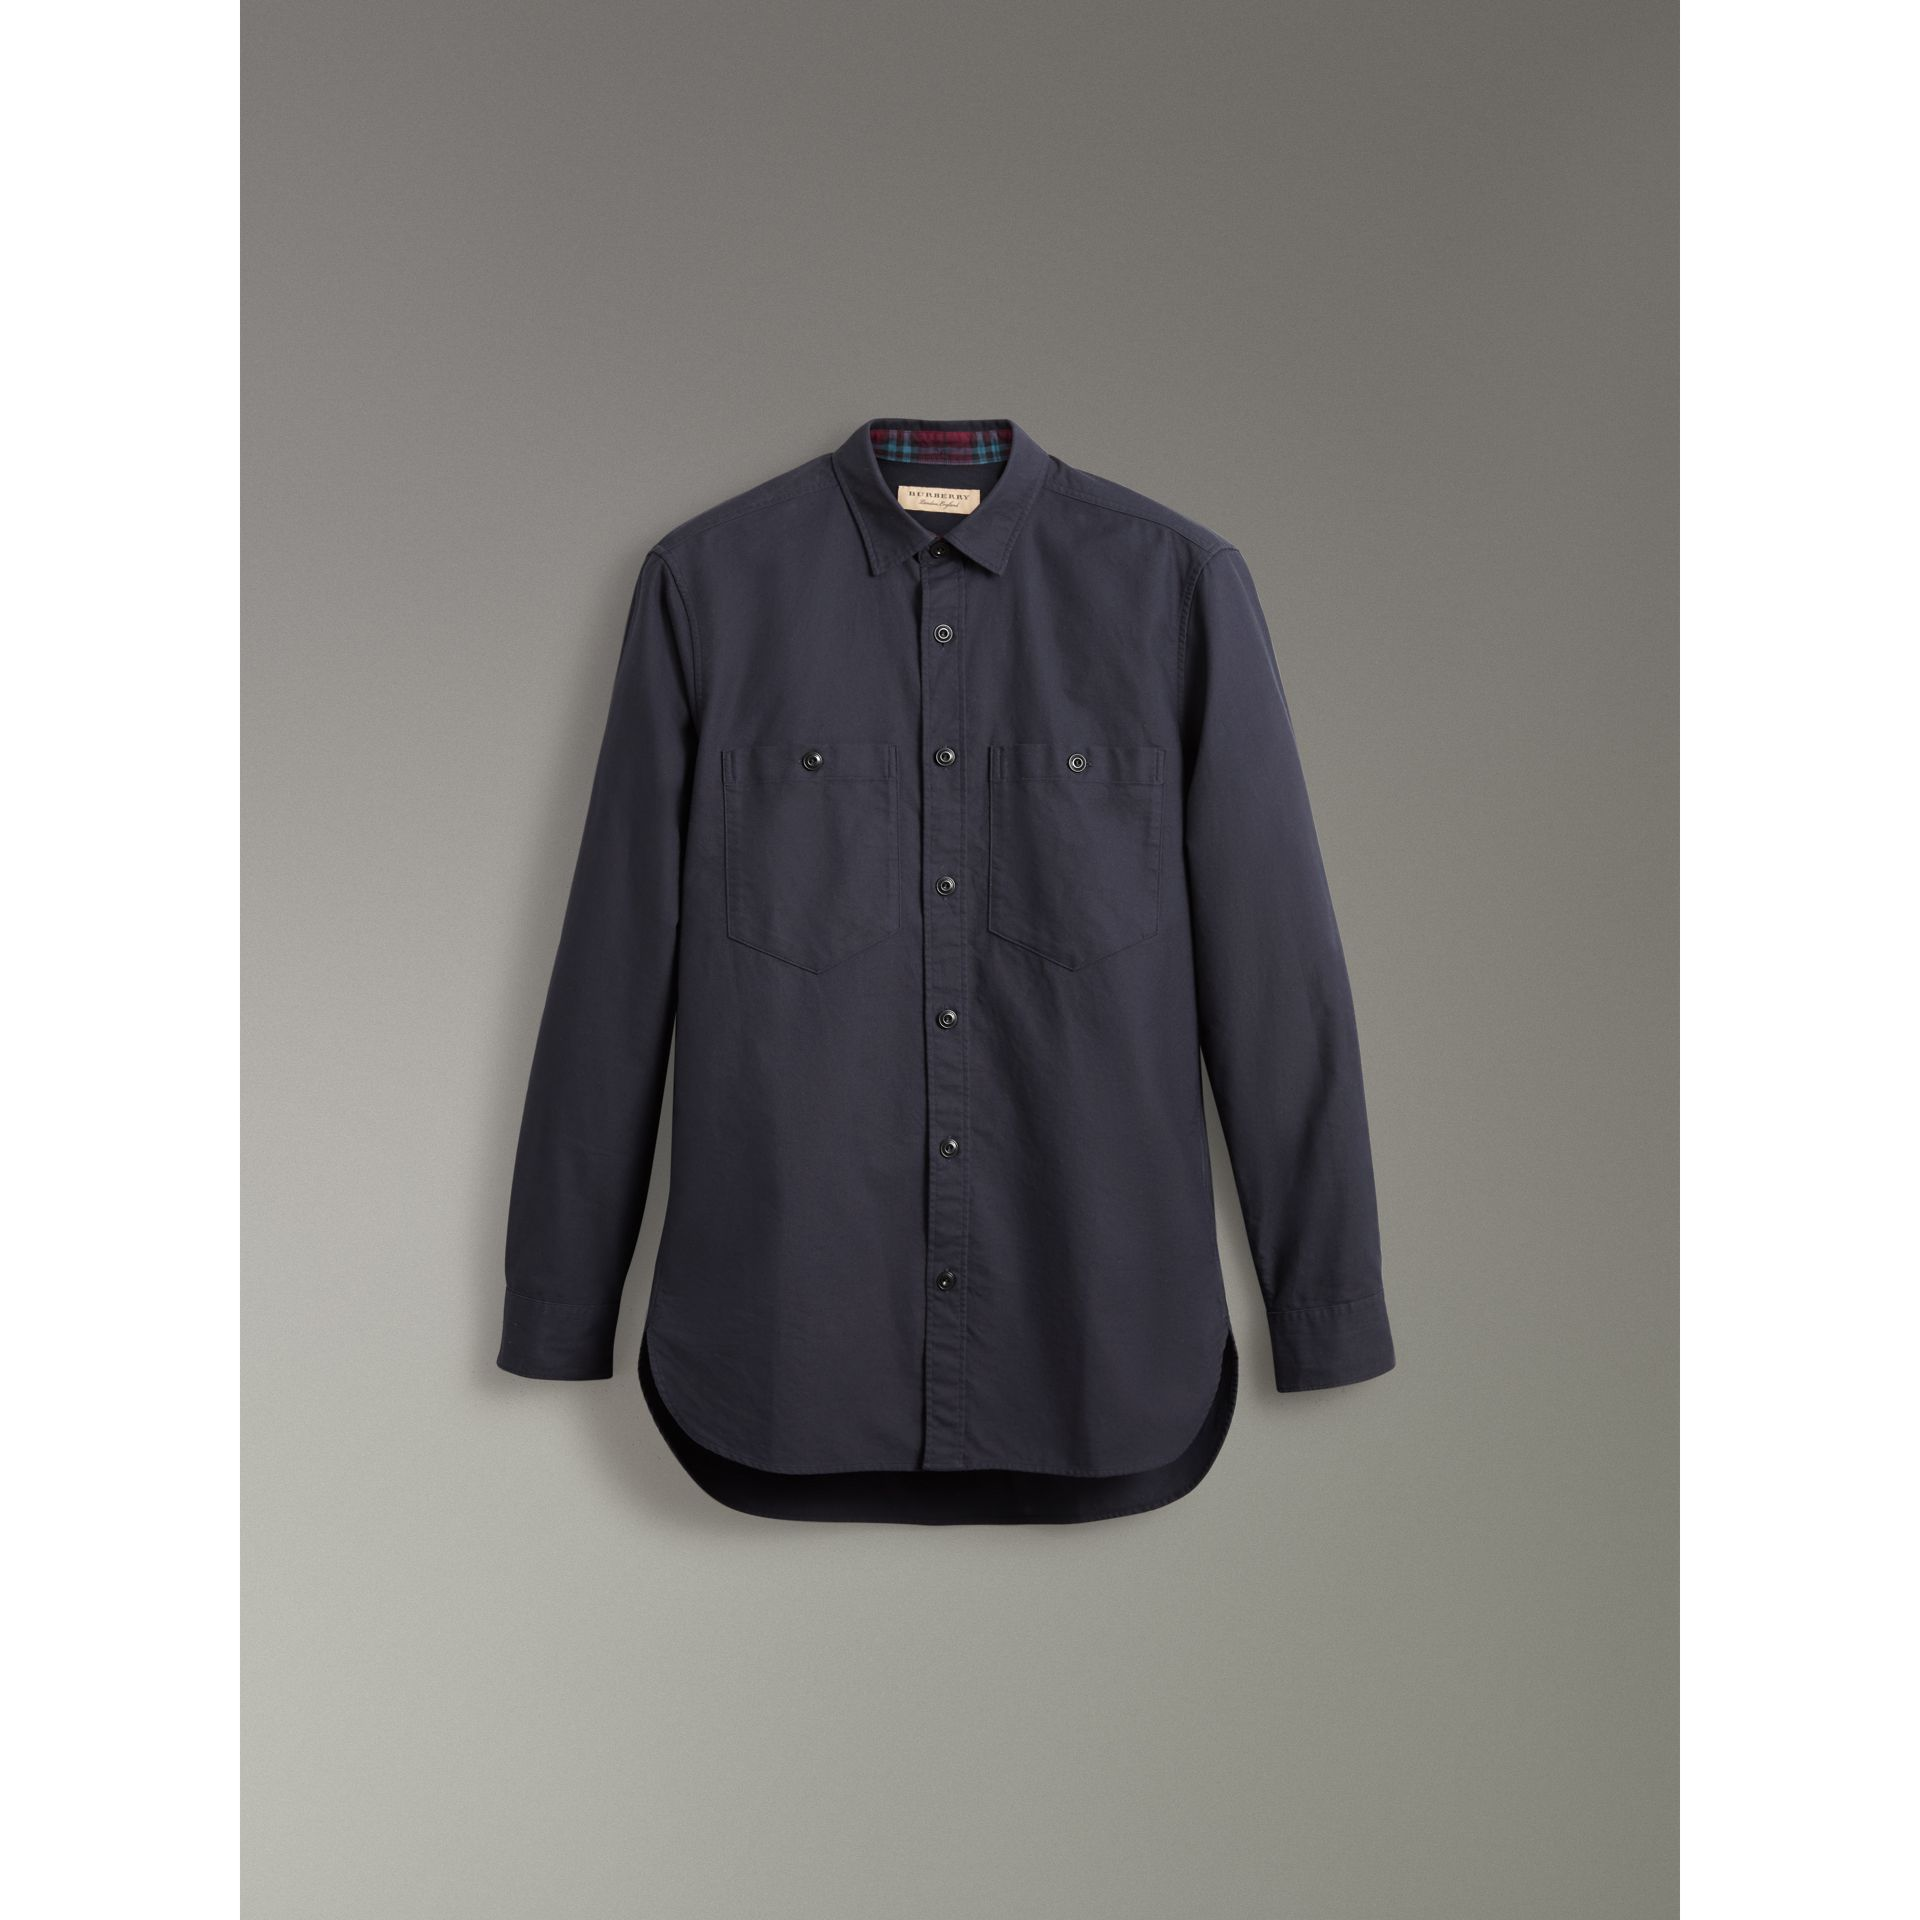 Cotton Oxford Shirt in Navy Blue - Men | Burberry United Kingdom - gallery image 3